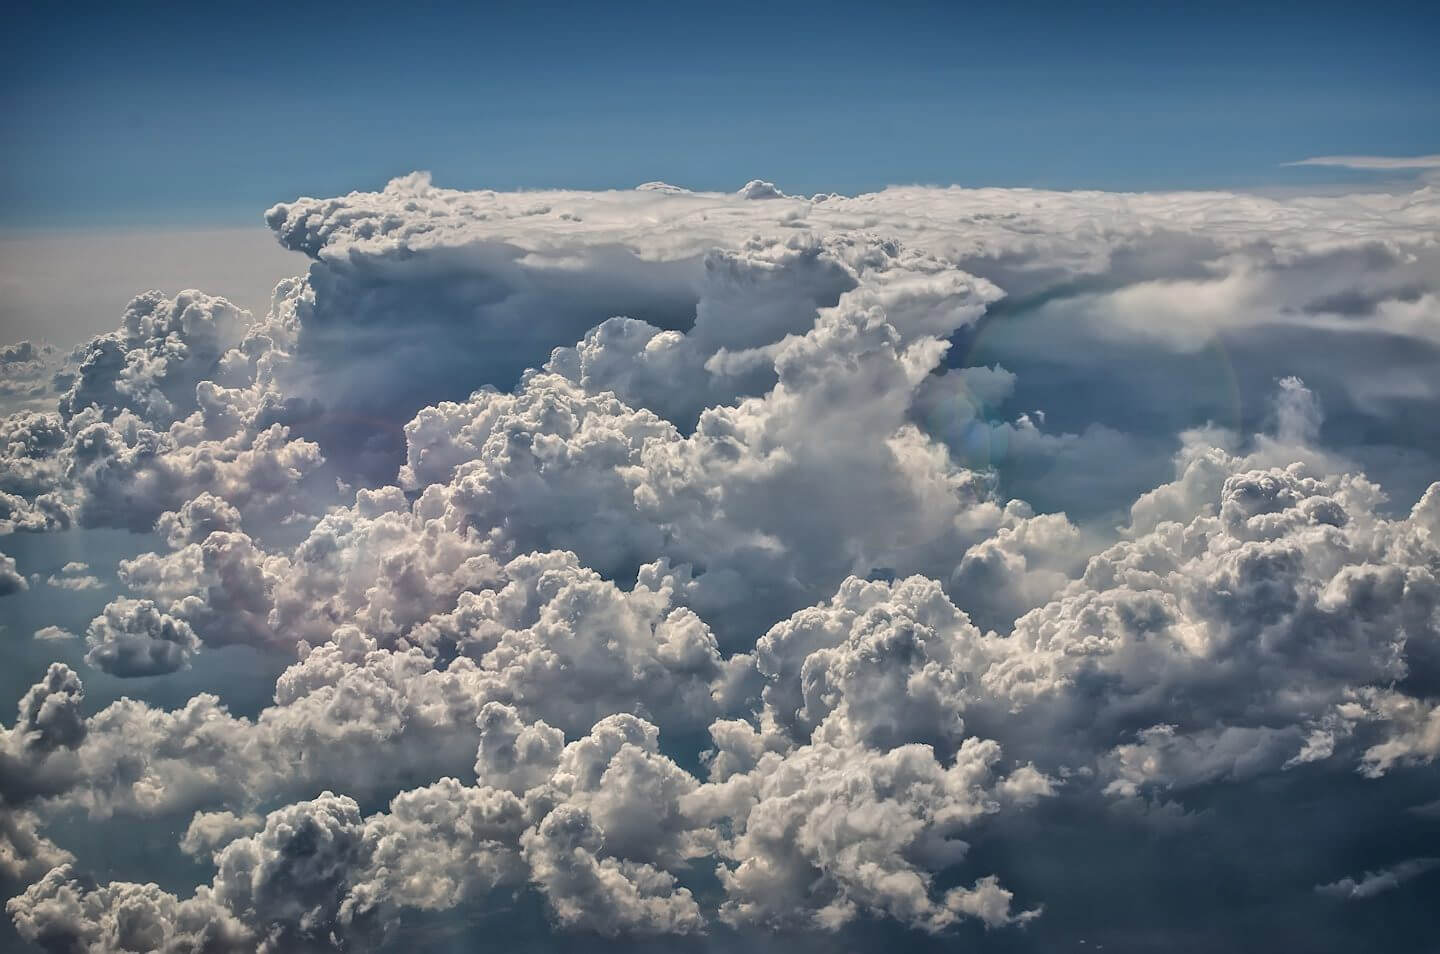 Fluffy clouds over Morocco; sky photographed from a plane